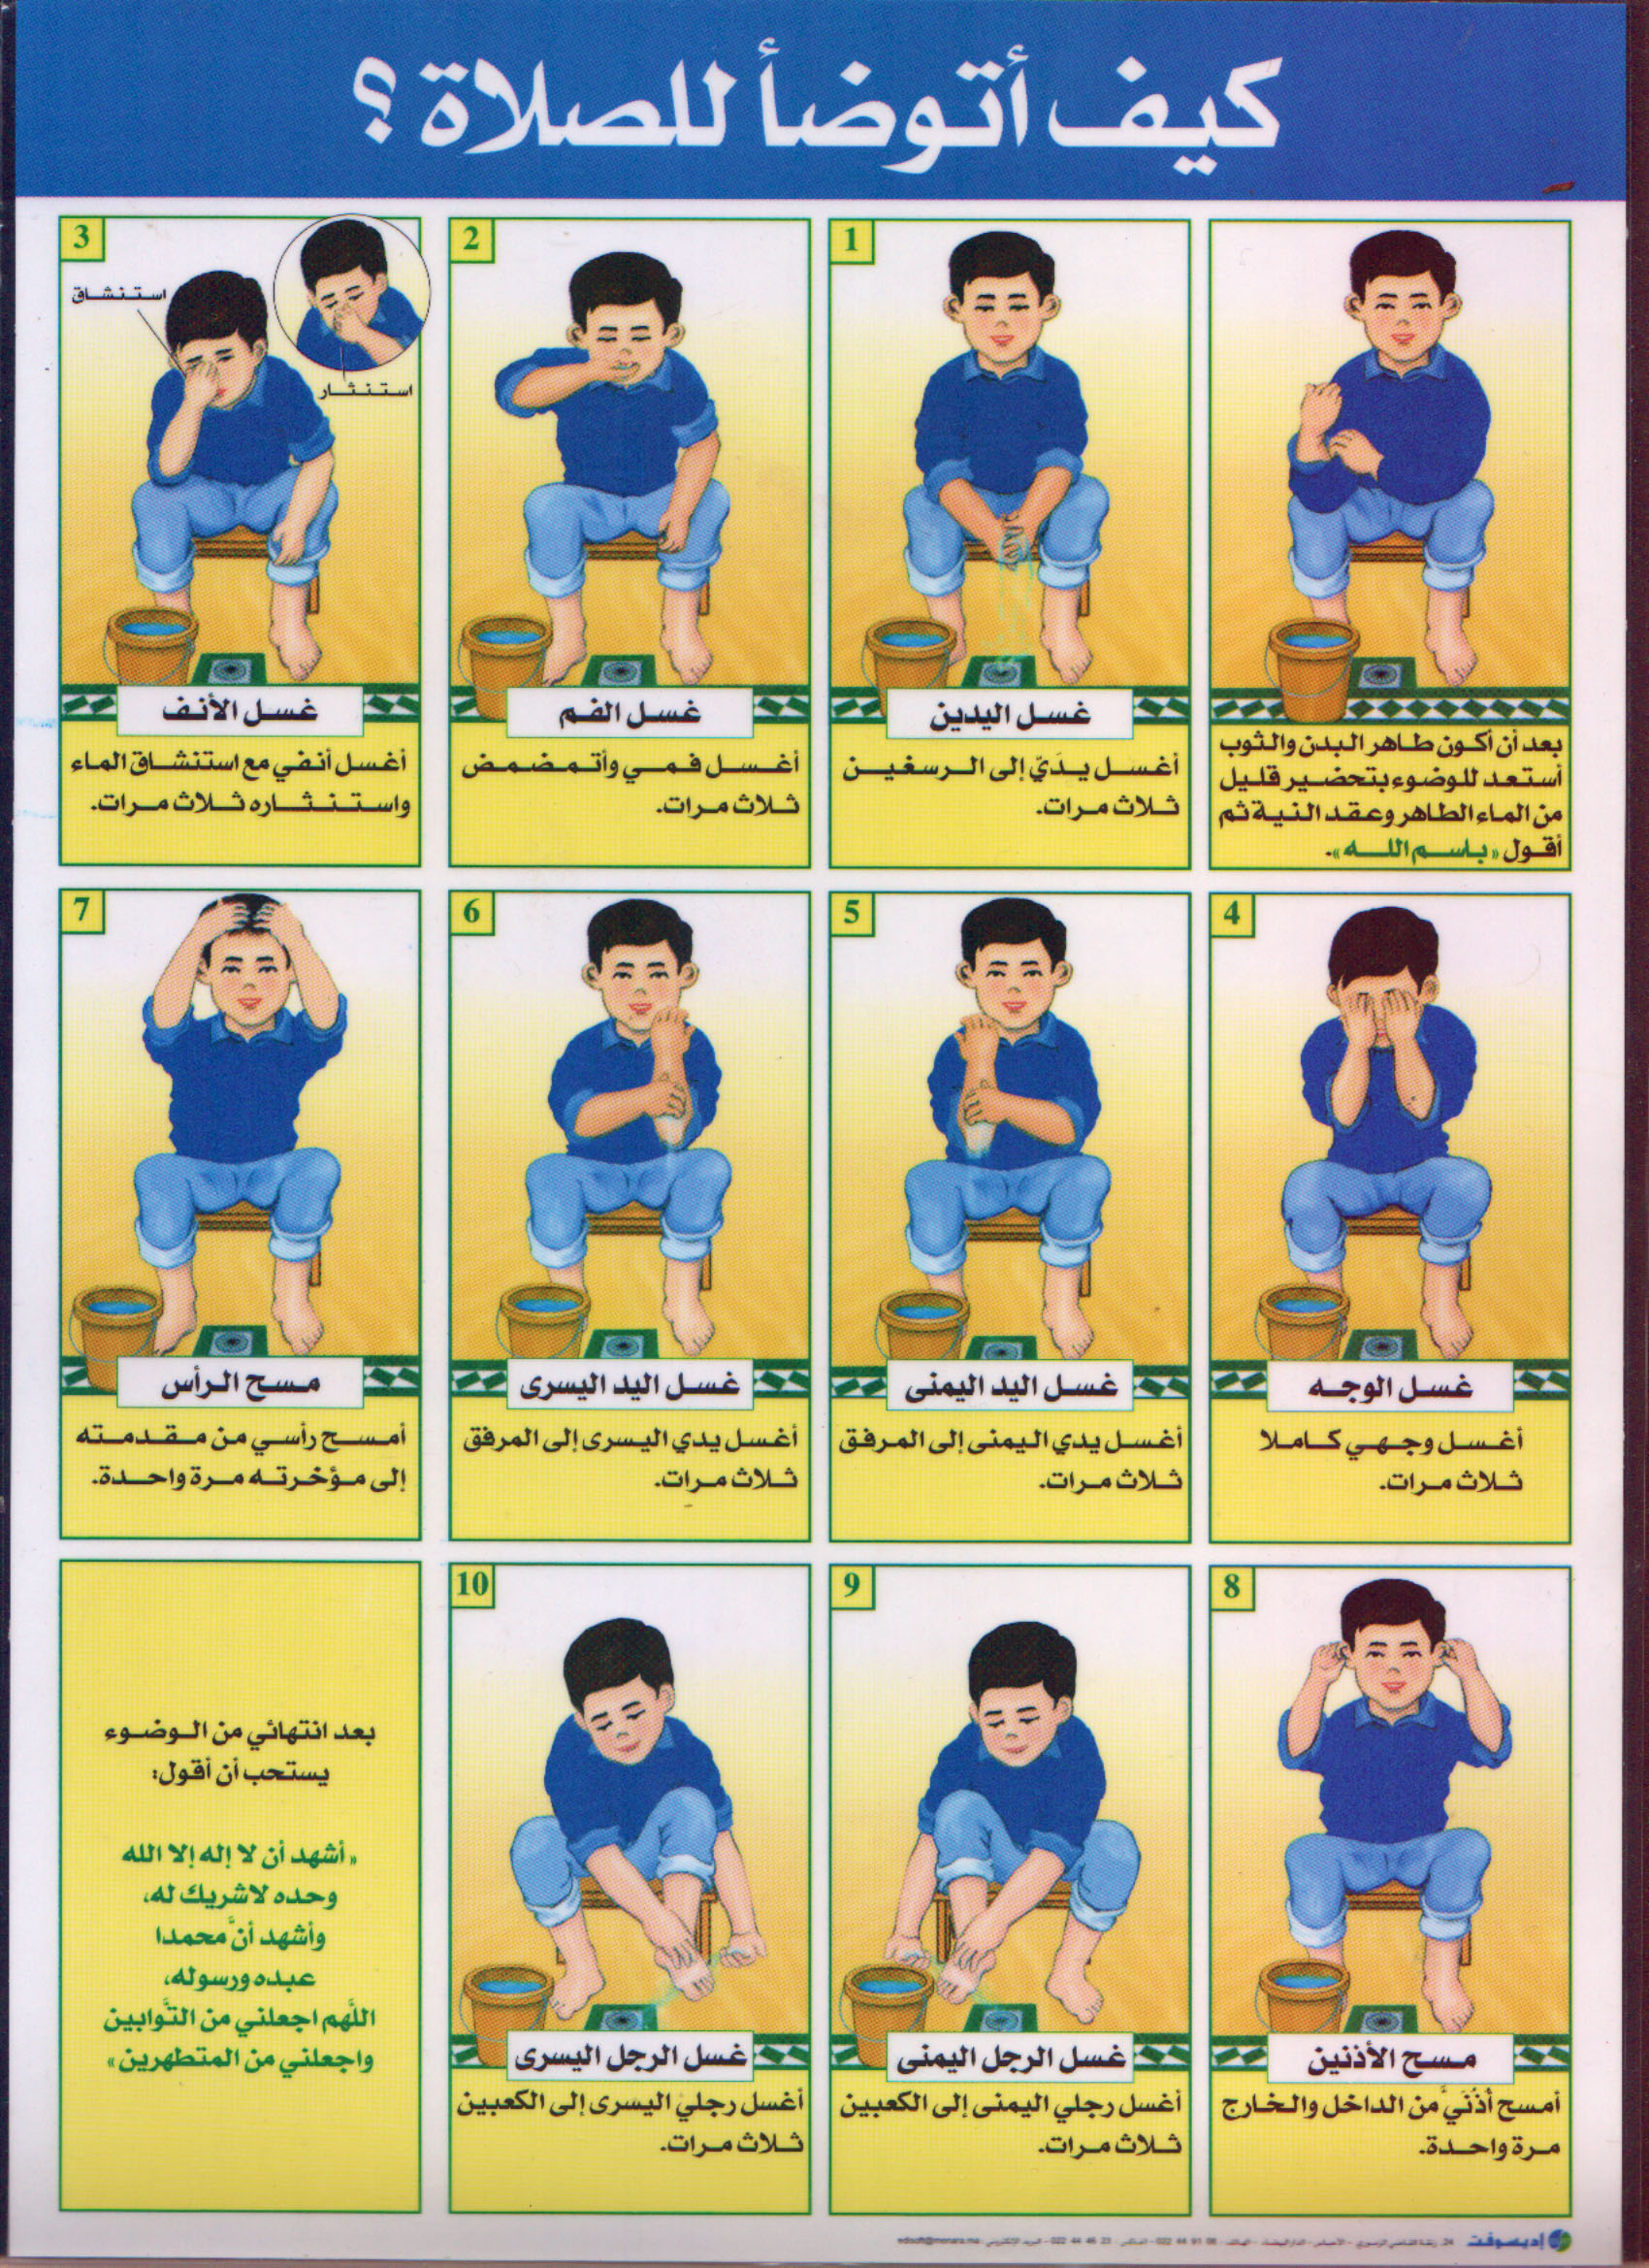 How To Perform Wuduu For Prayer A Step By Step Chart For Children And New Muslims